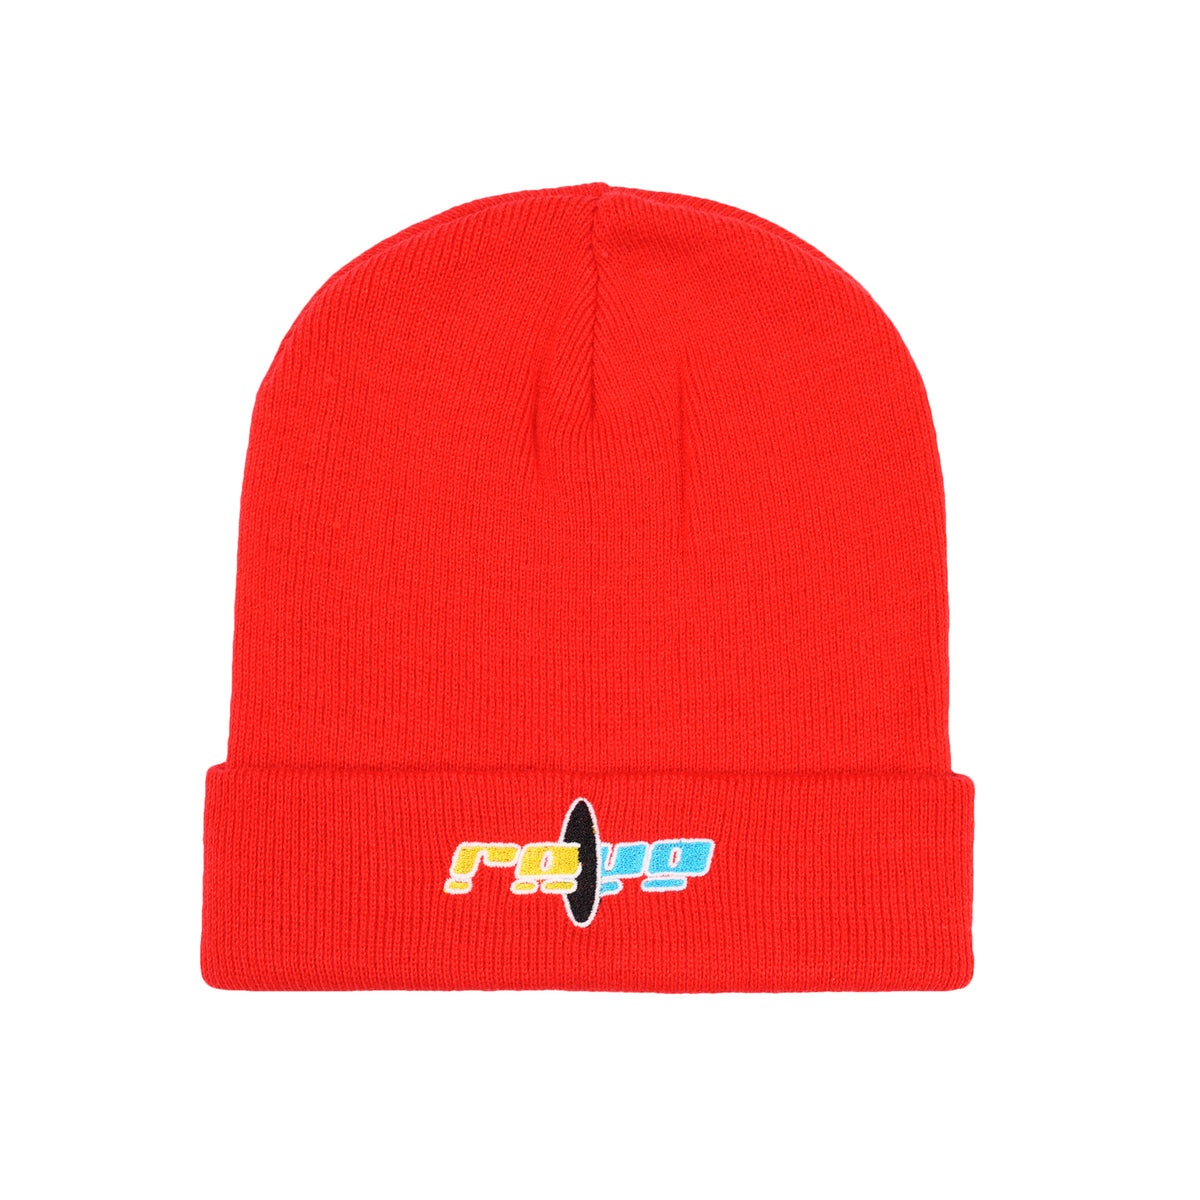 BLACK HOLE red beanie - RAVE skateboards